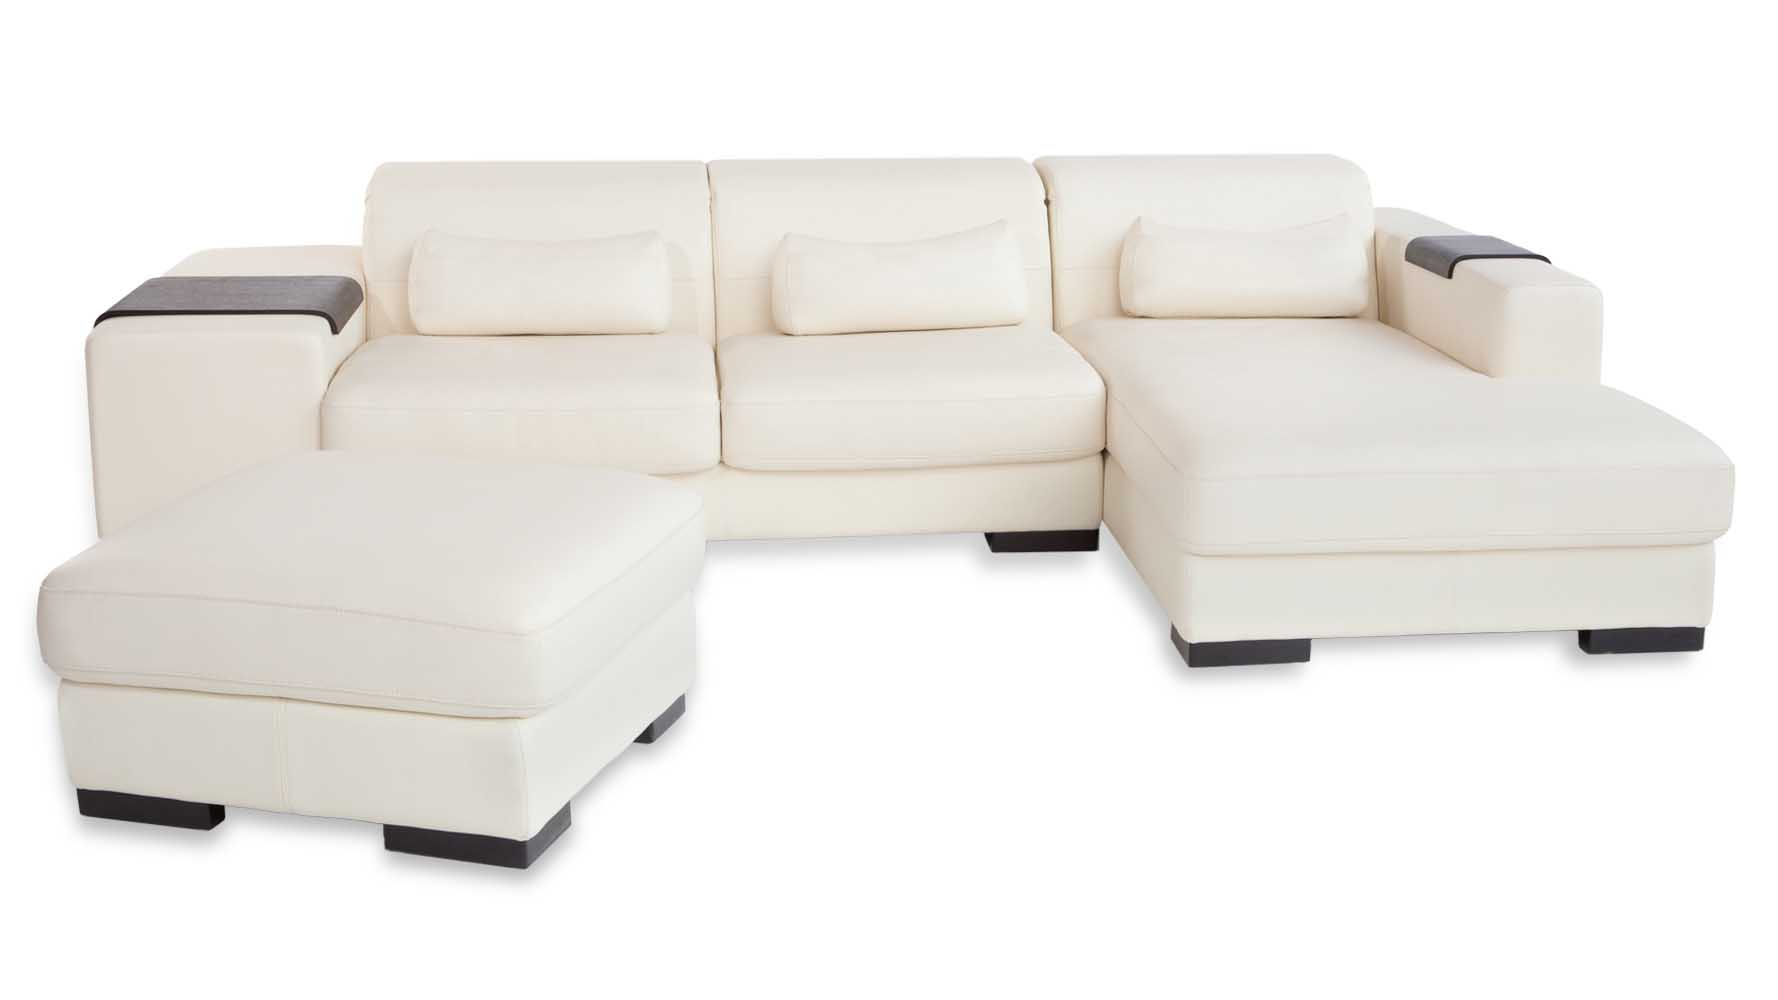 Cheap sofa beds dublin armless sectional sofa slipcovers for Where can i get affordable furniture